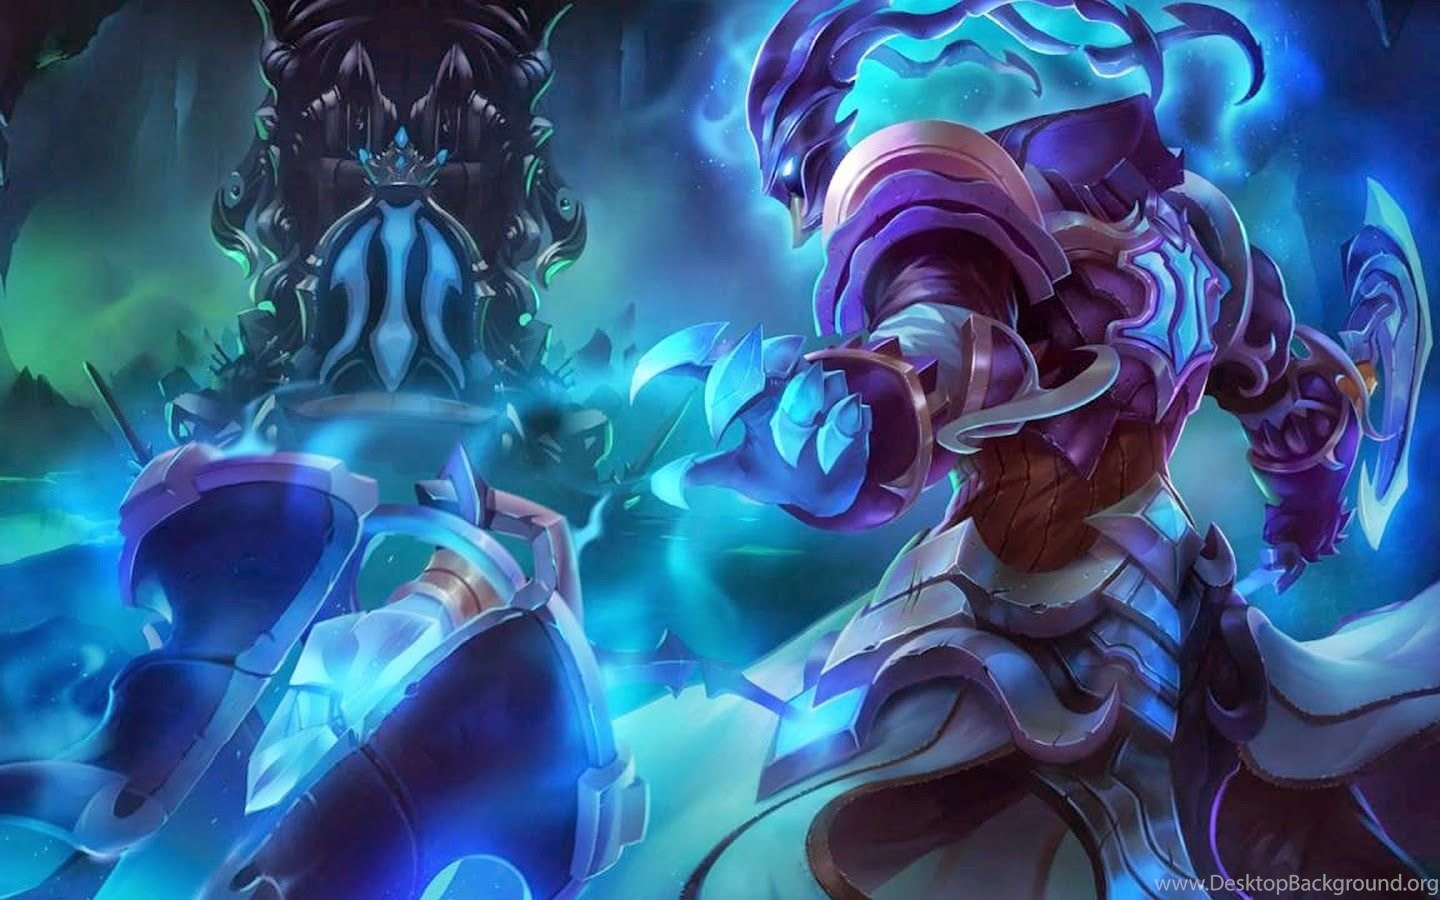 Wallpapers Xerath Lol Champion Free 1600x900 Desktop Background